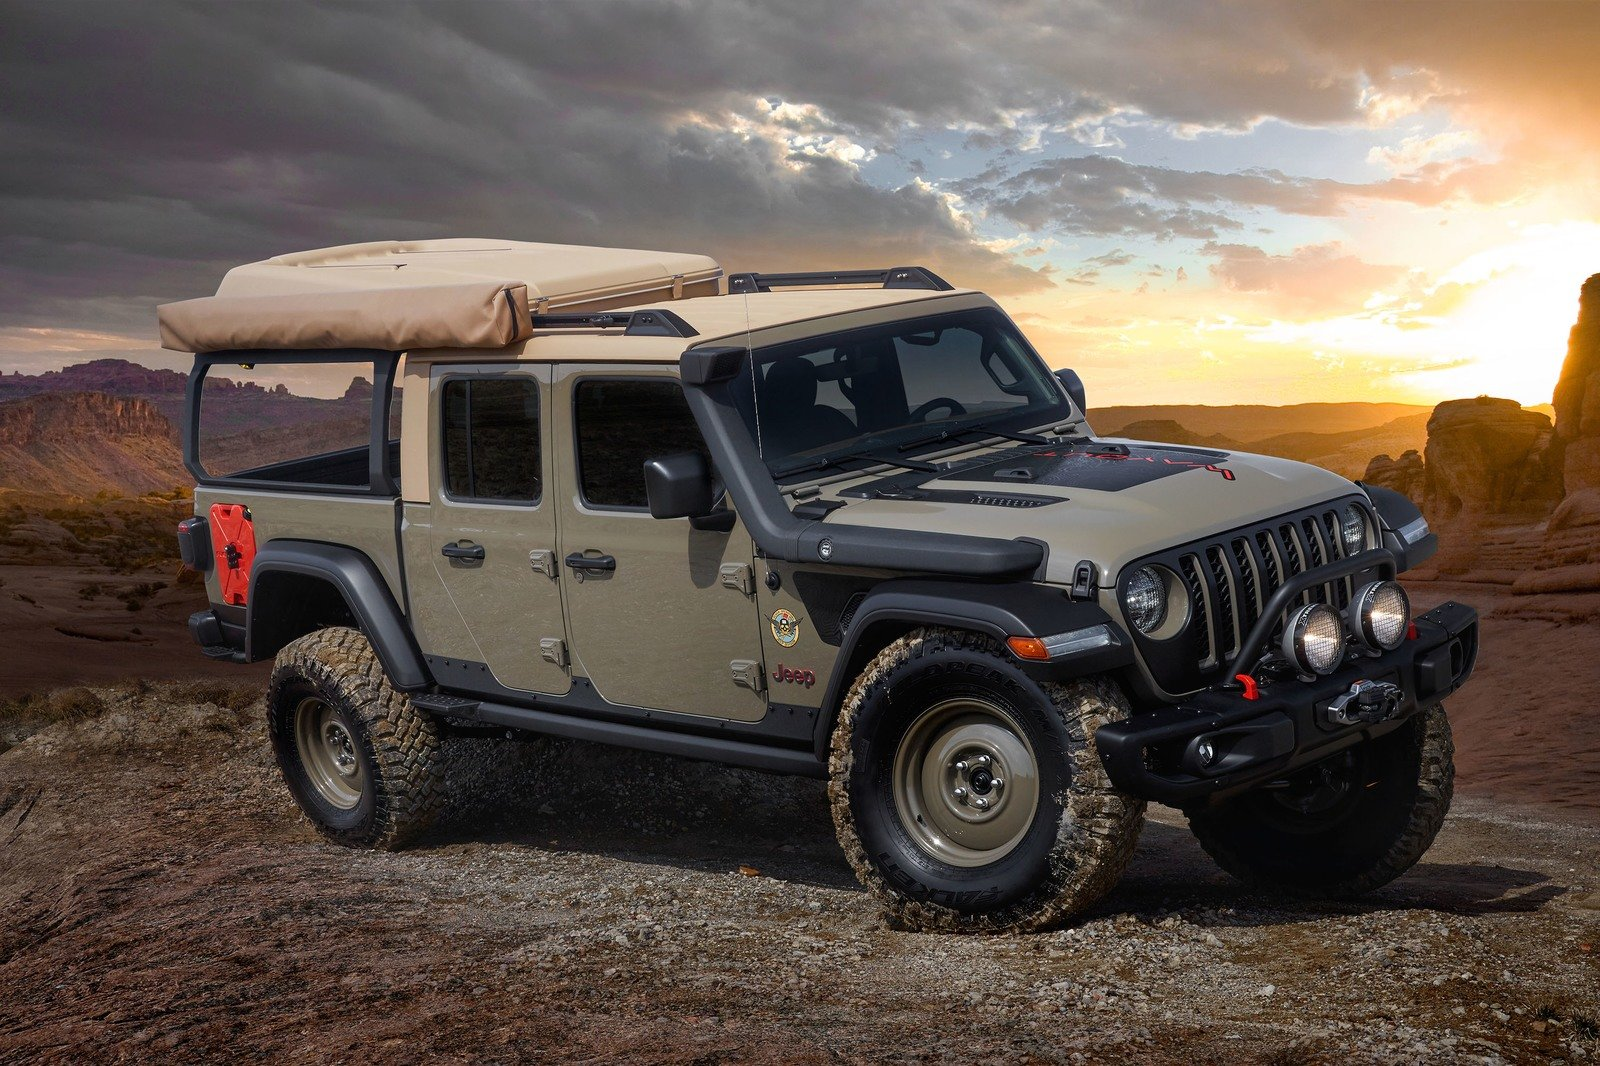 2019 Jeep Gladiator Wayout Concept Pictures, Photos ...